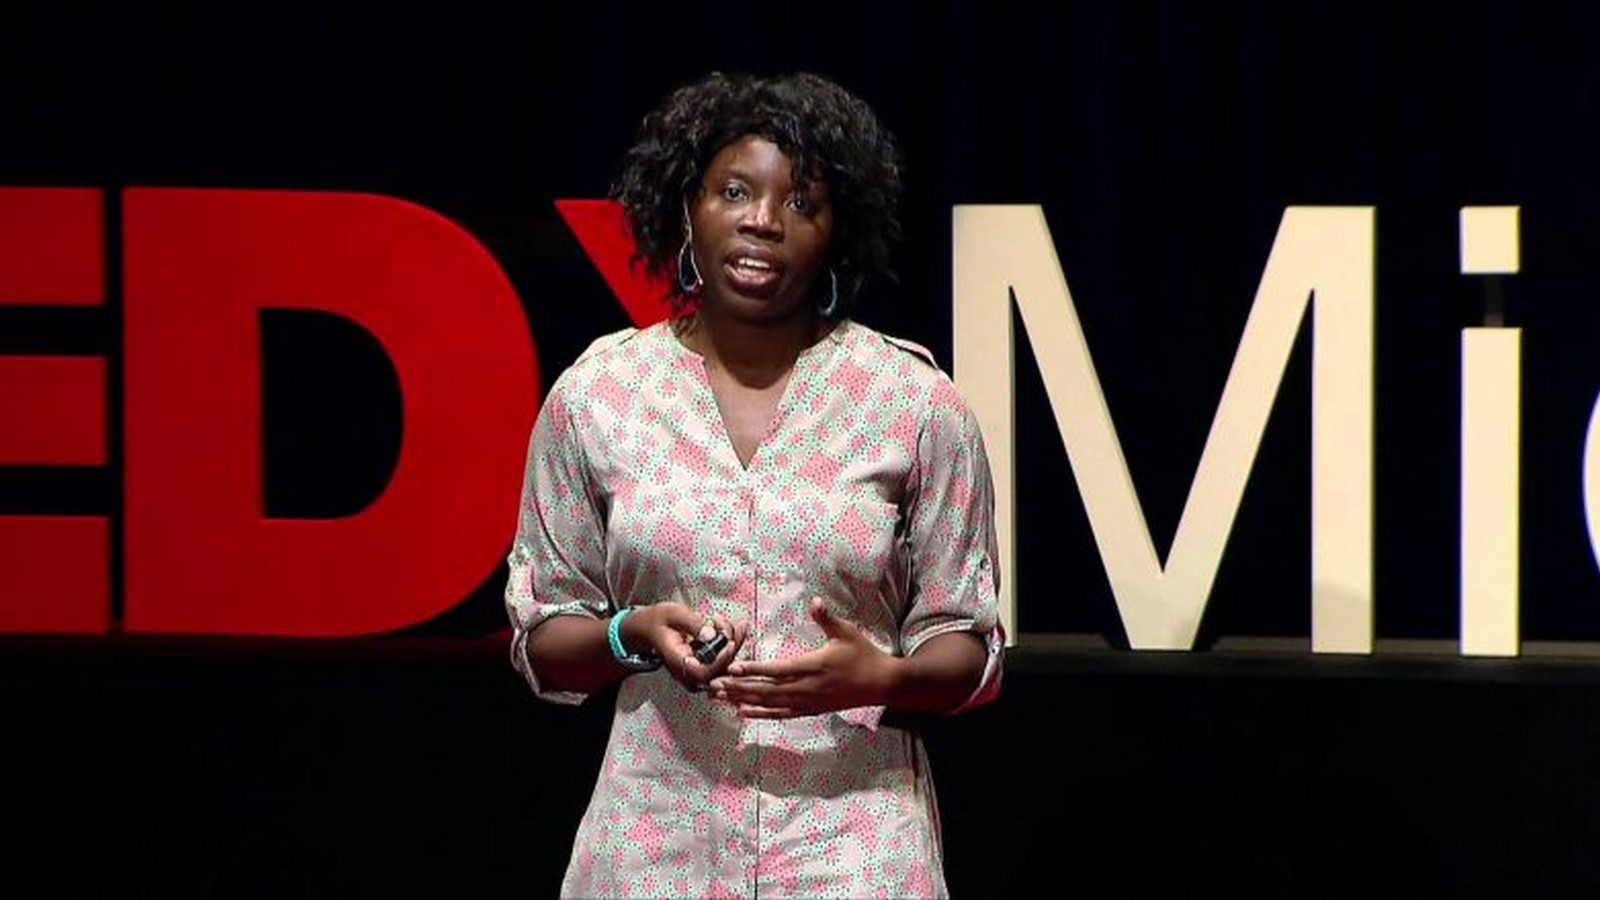 TedTalk for Architects Why I'm an architect that designs for social impact, not buildings by Liz Ogbu